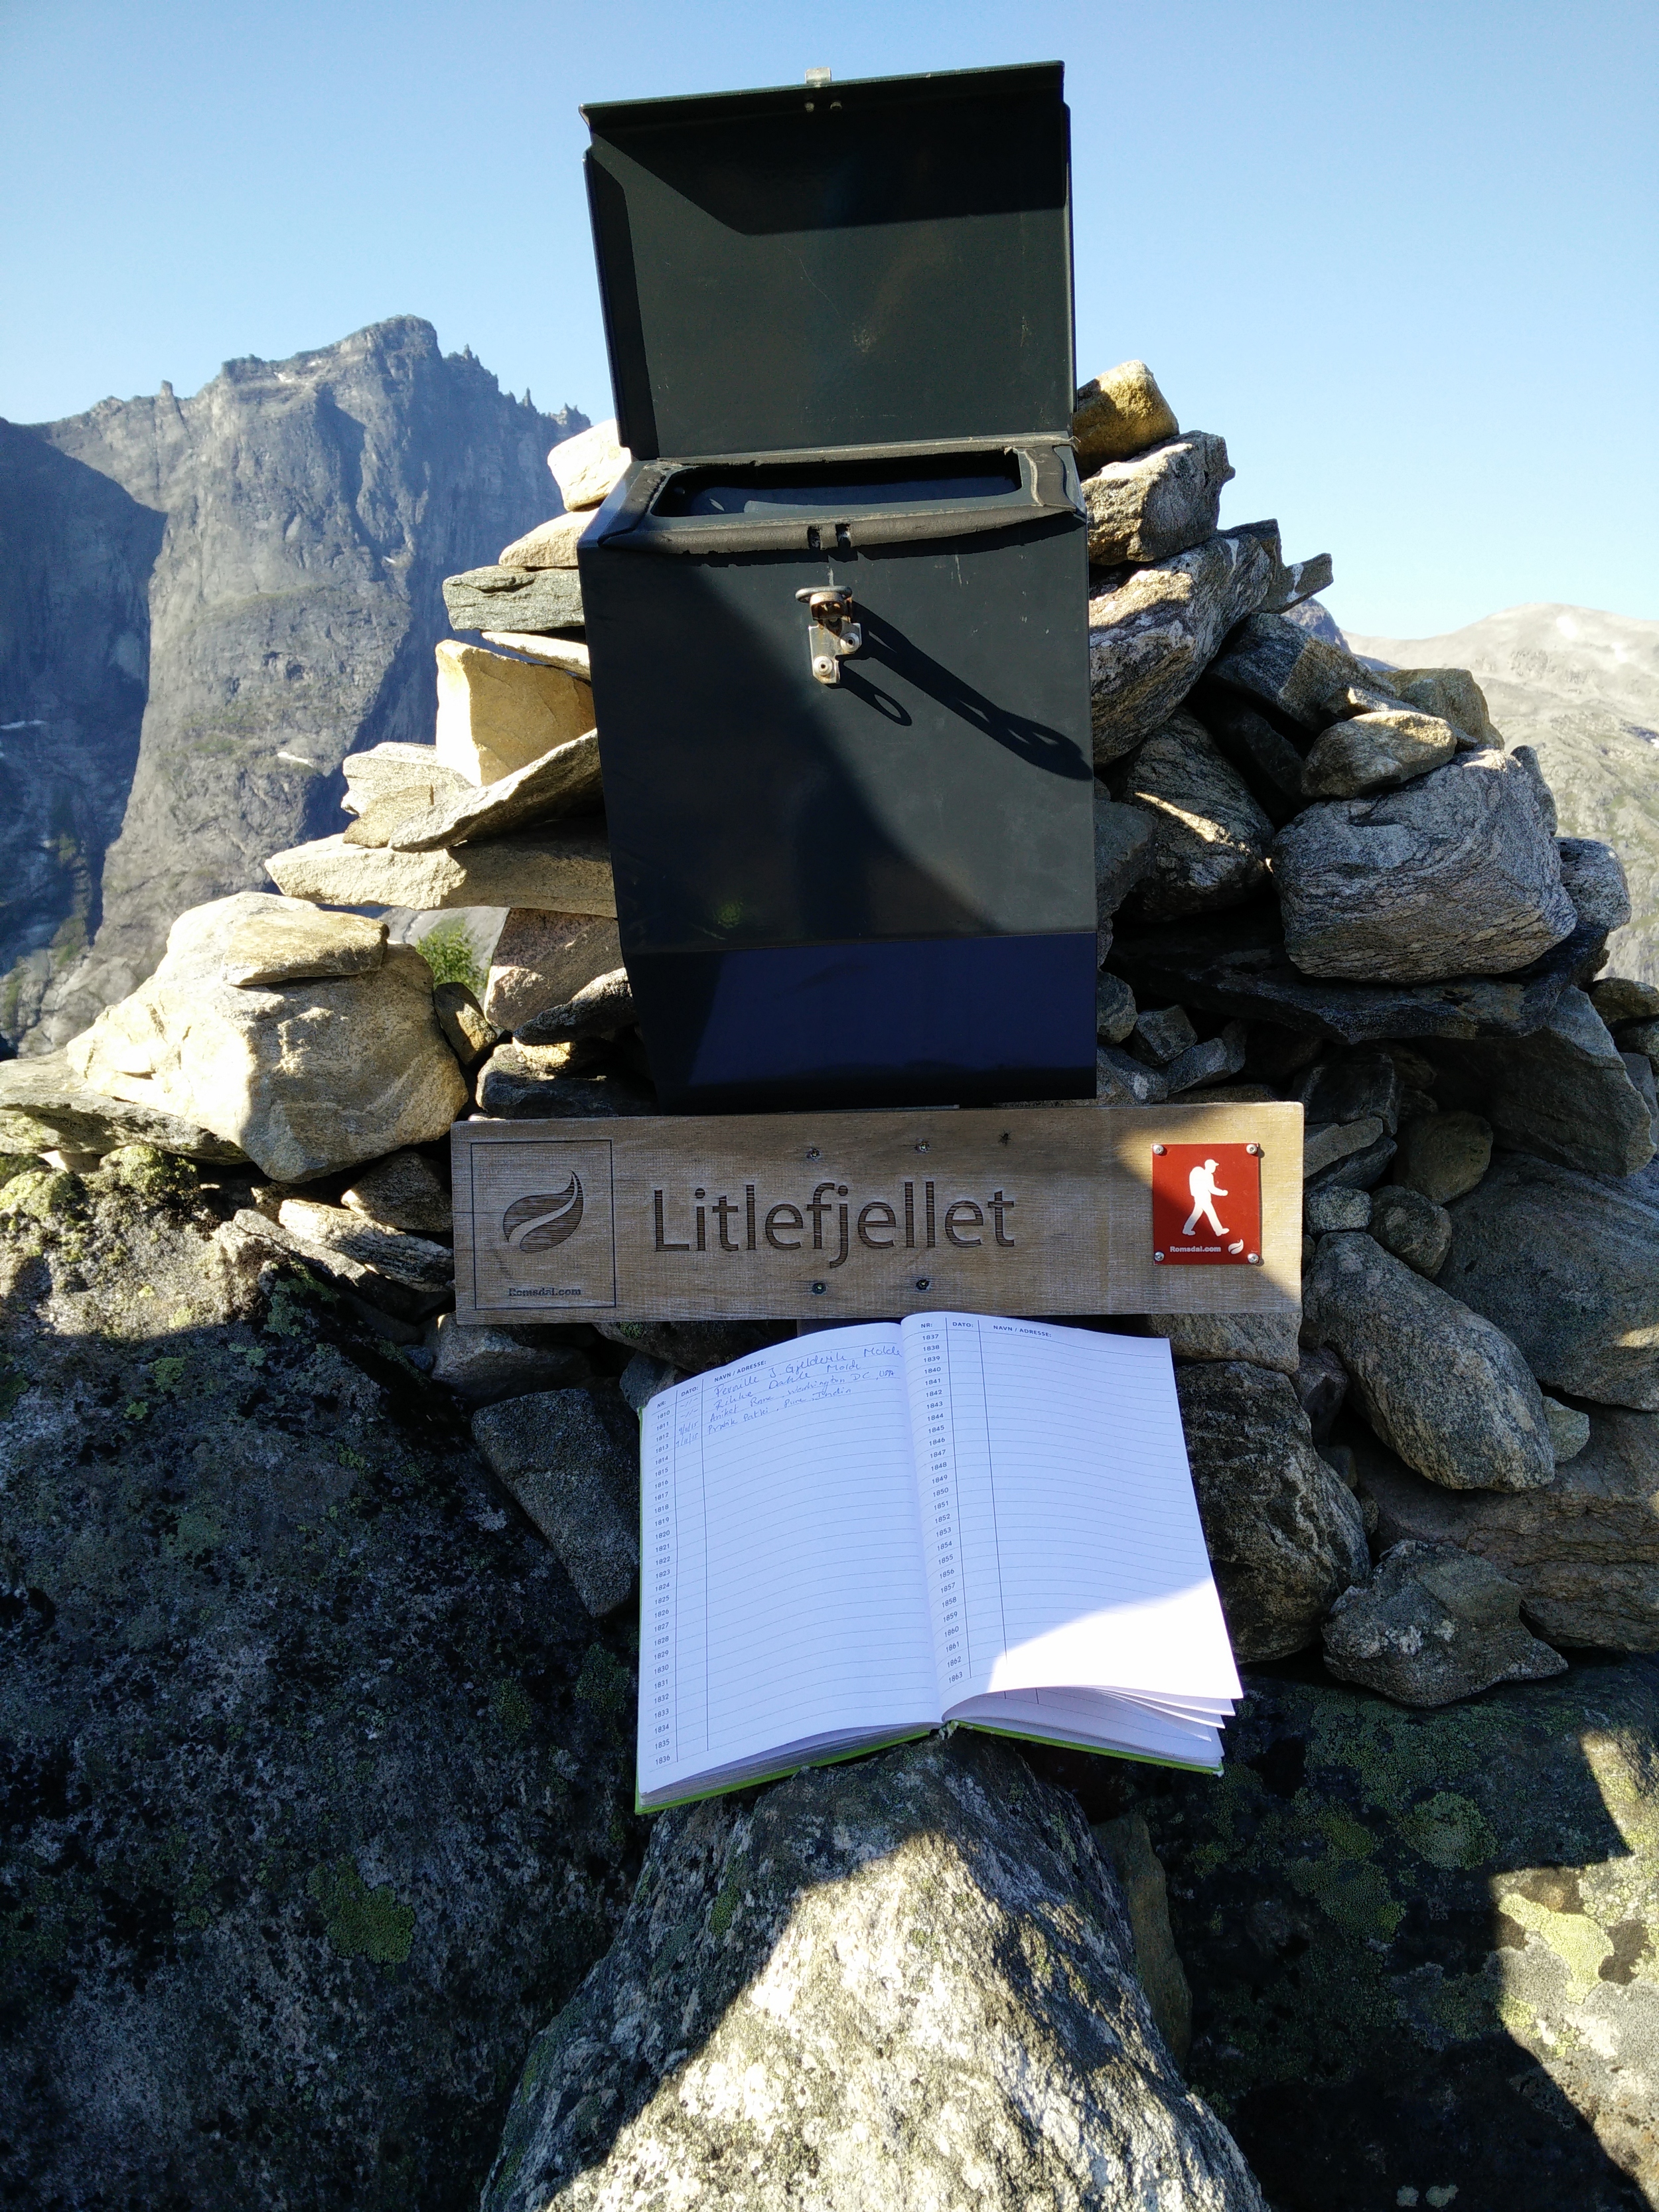 The record book of people who visited Litlefjellet